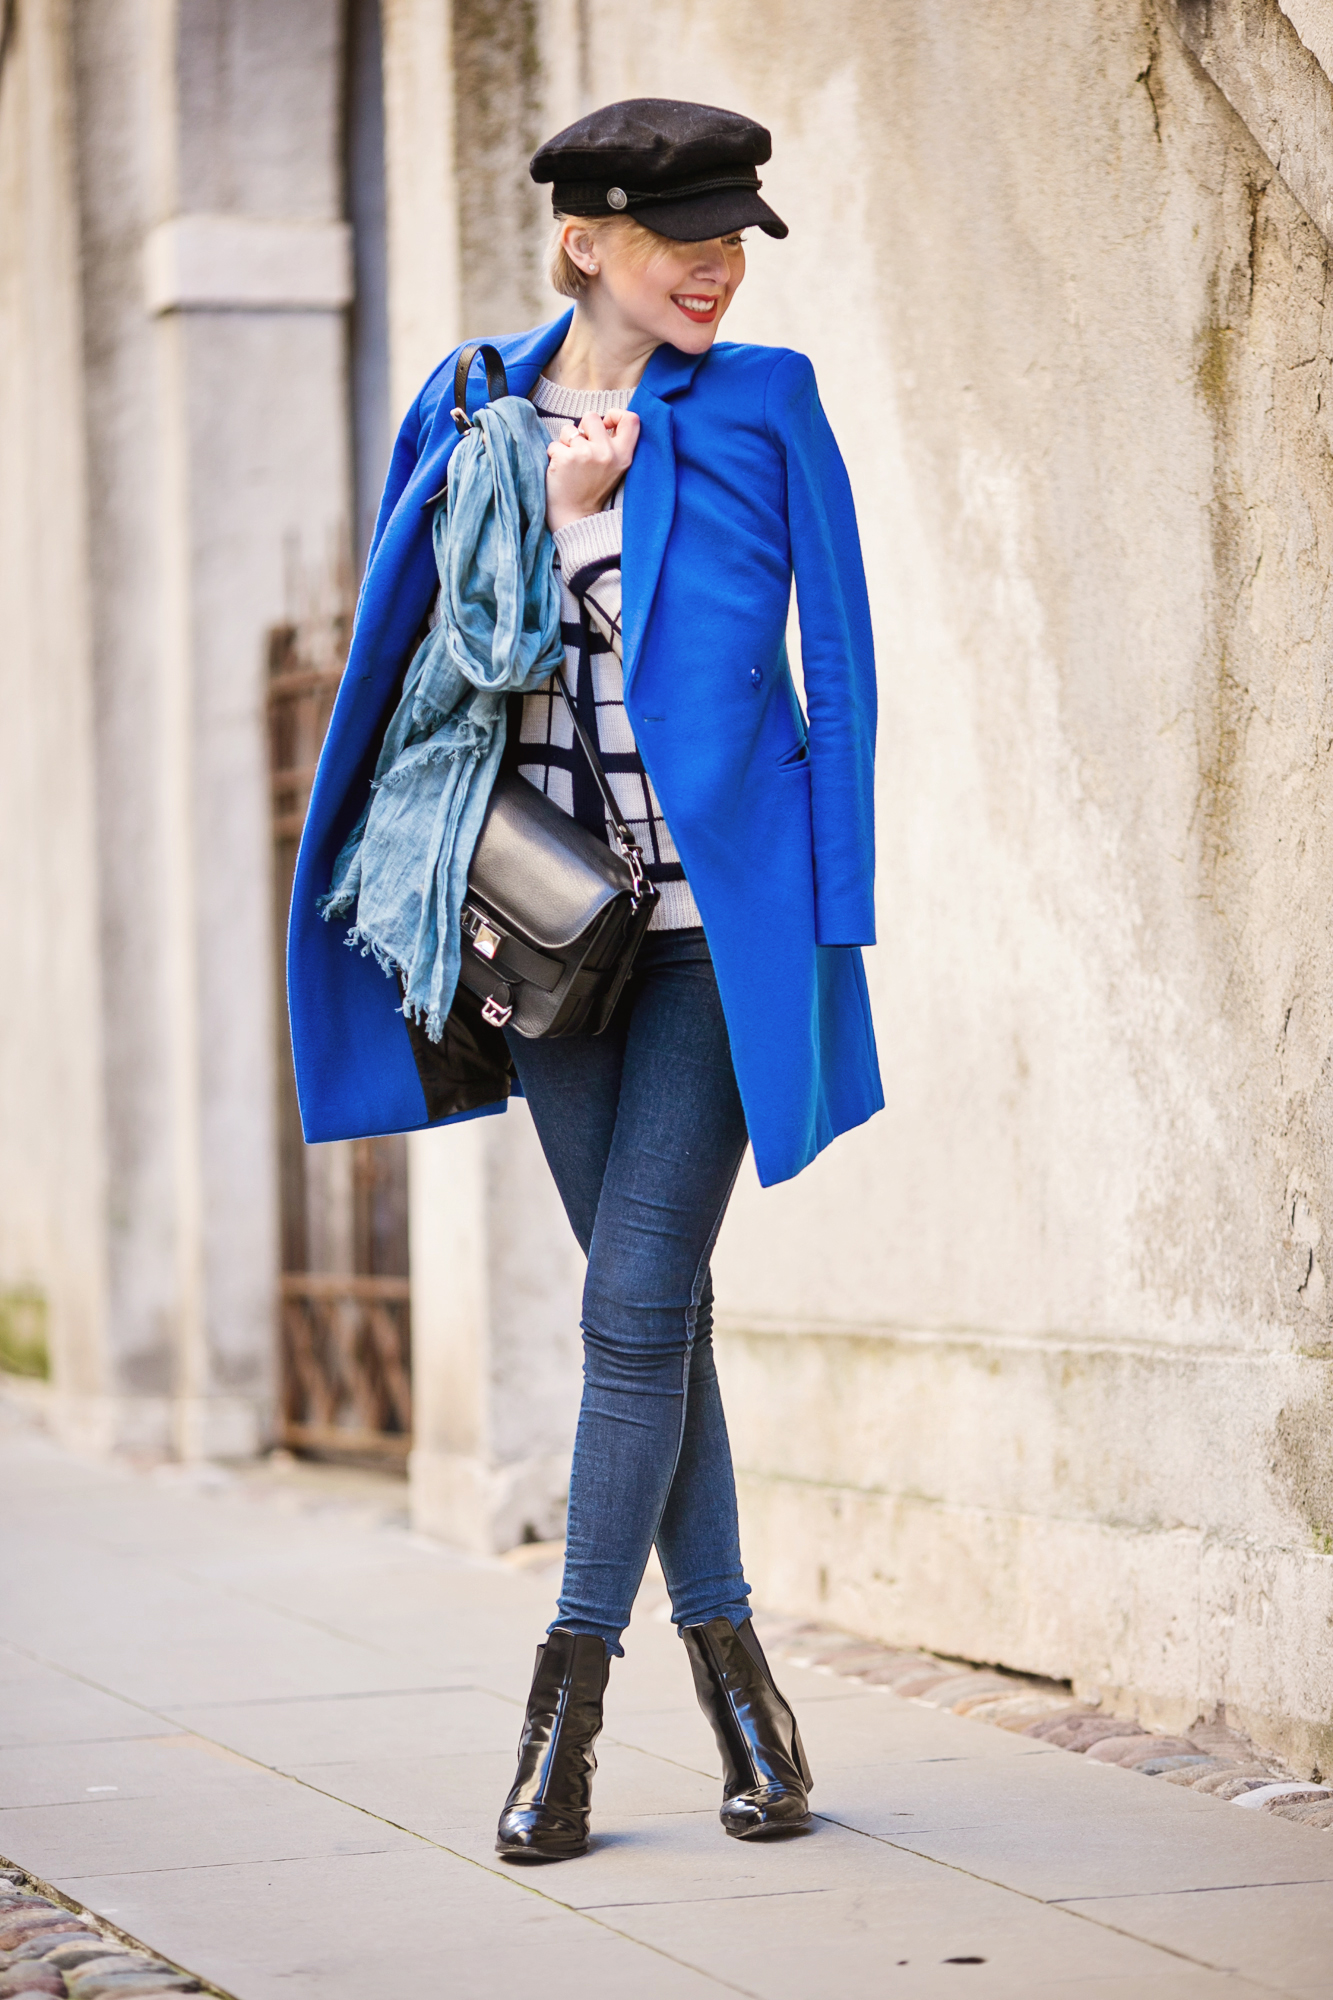 darya kamalova thecablook russian italian fashion bogger street style trend hm paris collection hat asos cobalt blue coat dr denim jeans ps11 proenza schouler bag bergamo cita alta centro storico italia italy-24 copy